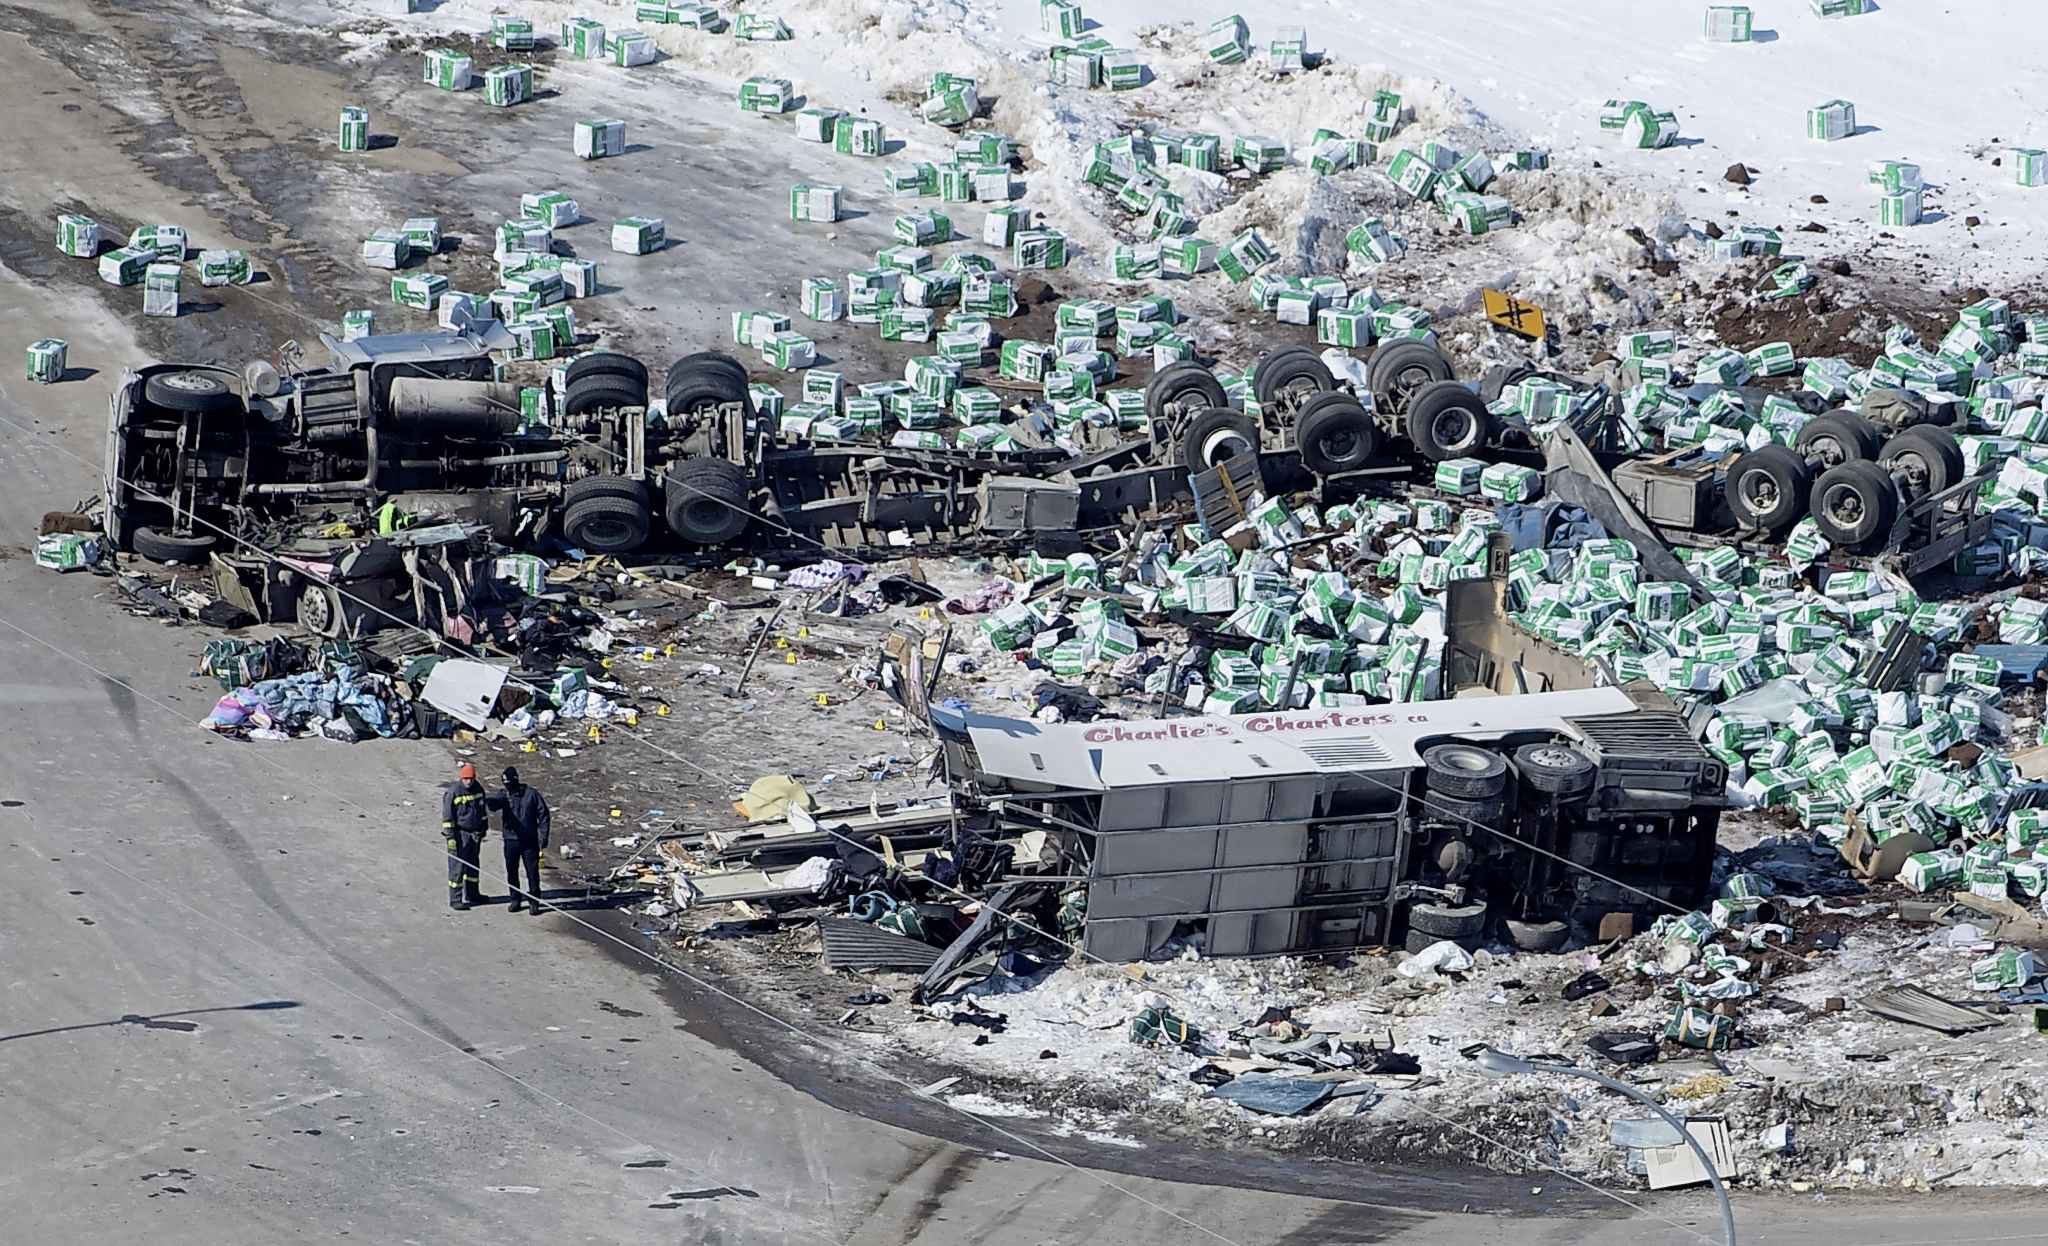 A truck driver with only three weeks of road experience drove his semi through a stop sign without braking and hit a bus carrying the Humboldt Broncos junior hockey team. Sixteen people were killed and 13 others were injured. (Jonathan Hayward / The Canadian Press files)